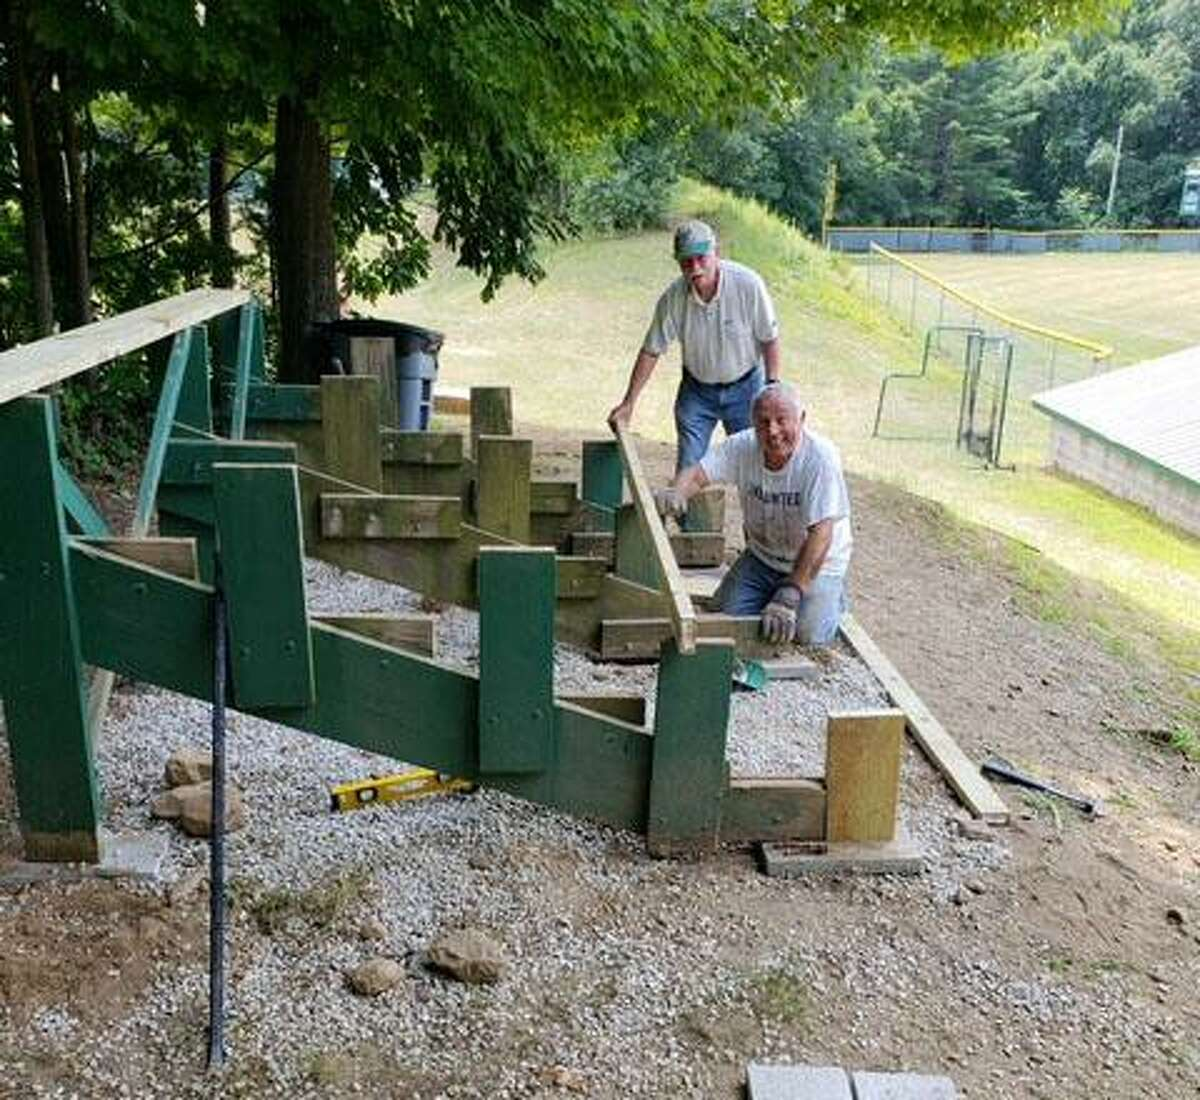 New Milford Lions Frank Cavaliero, left, and John Dunne work resconstructing two sets of wooden bleachers at one of the town's fields.